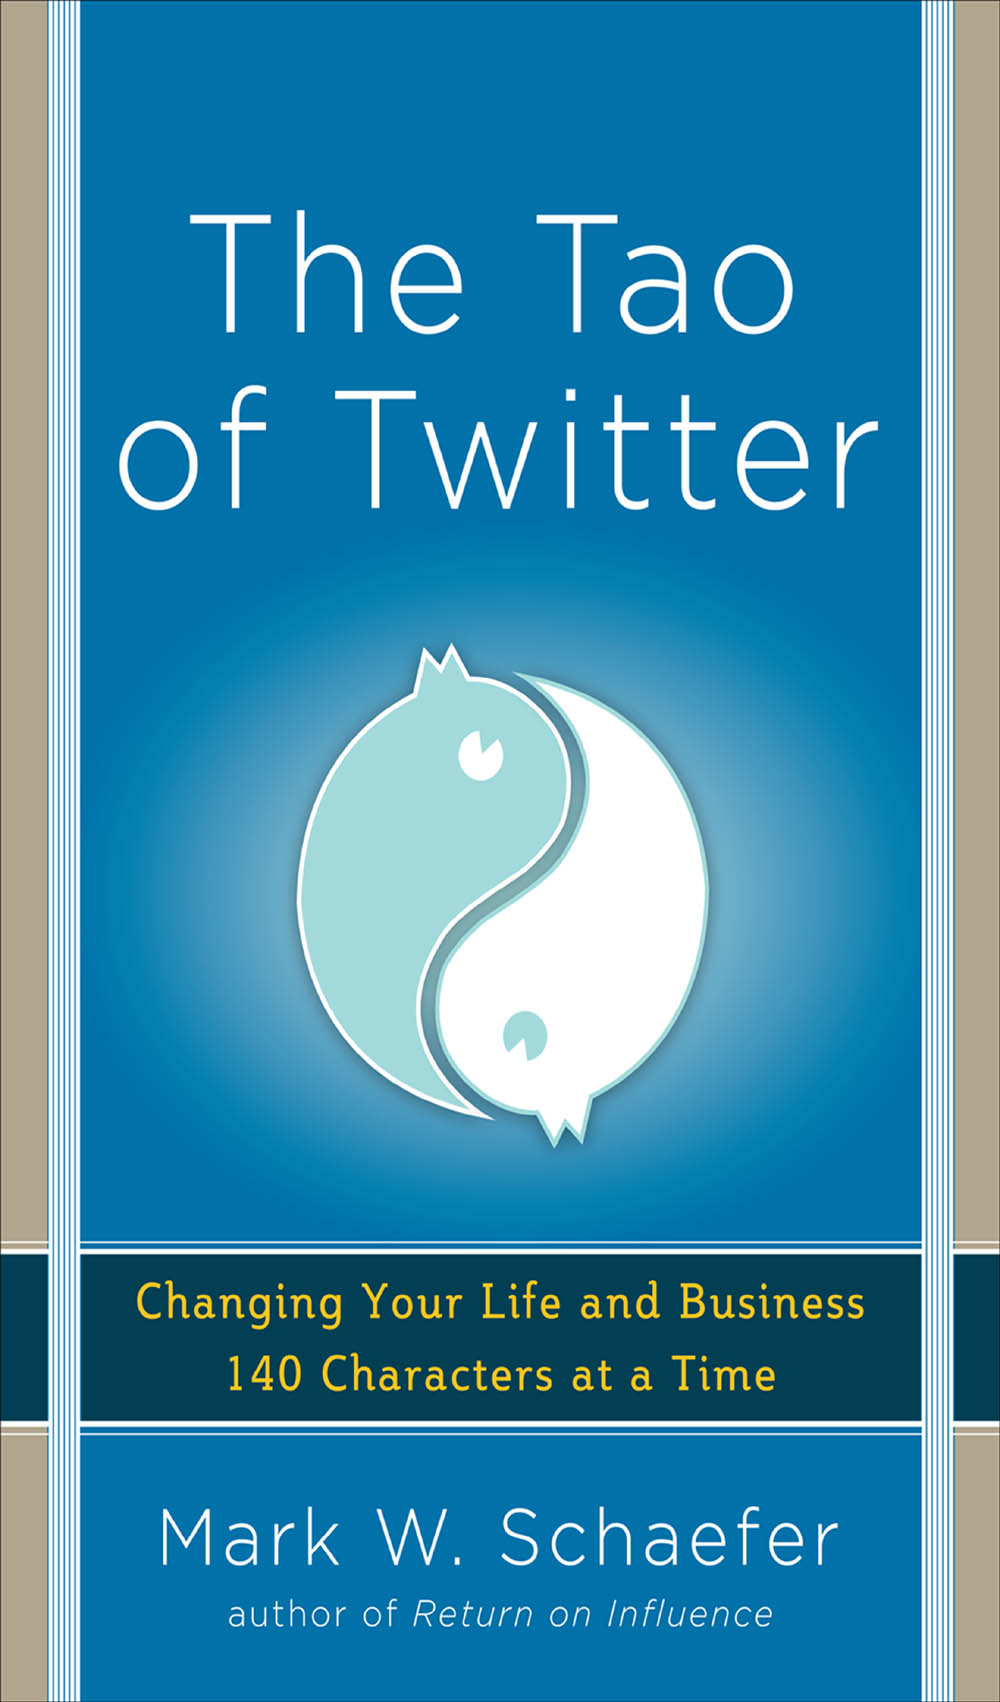 The Tao of Twitter: Changing Your Life and Business 140 Characters at a Time By: Mark Schaefer